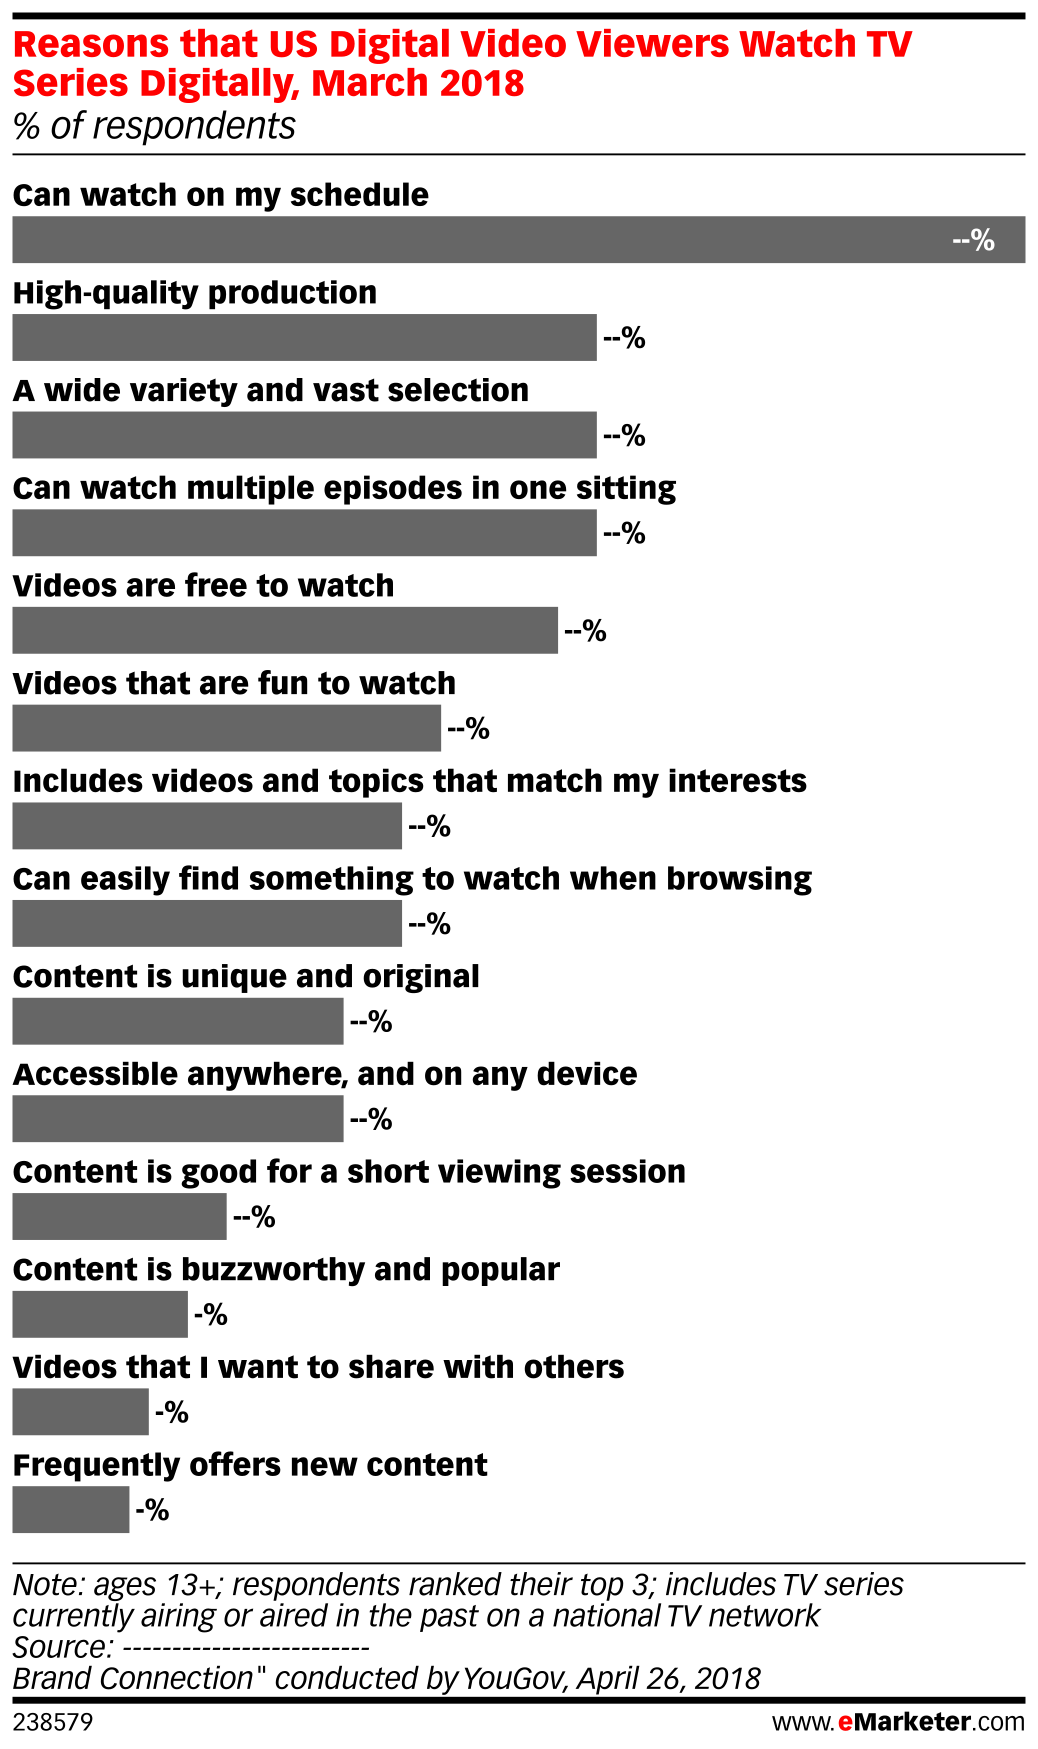 Reasons that US Digital Video Viewers Watch TV Series Digitally, March 2018 (% of respondents)